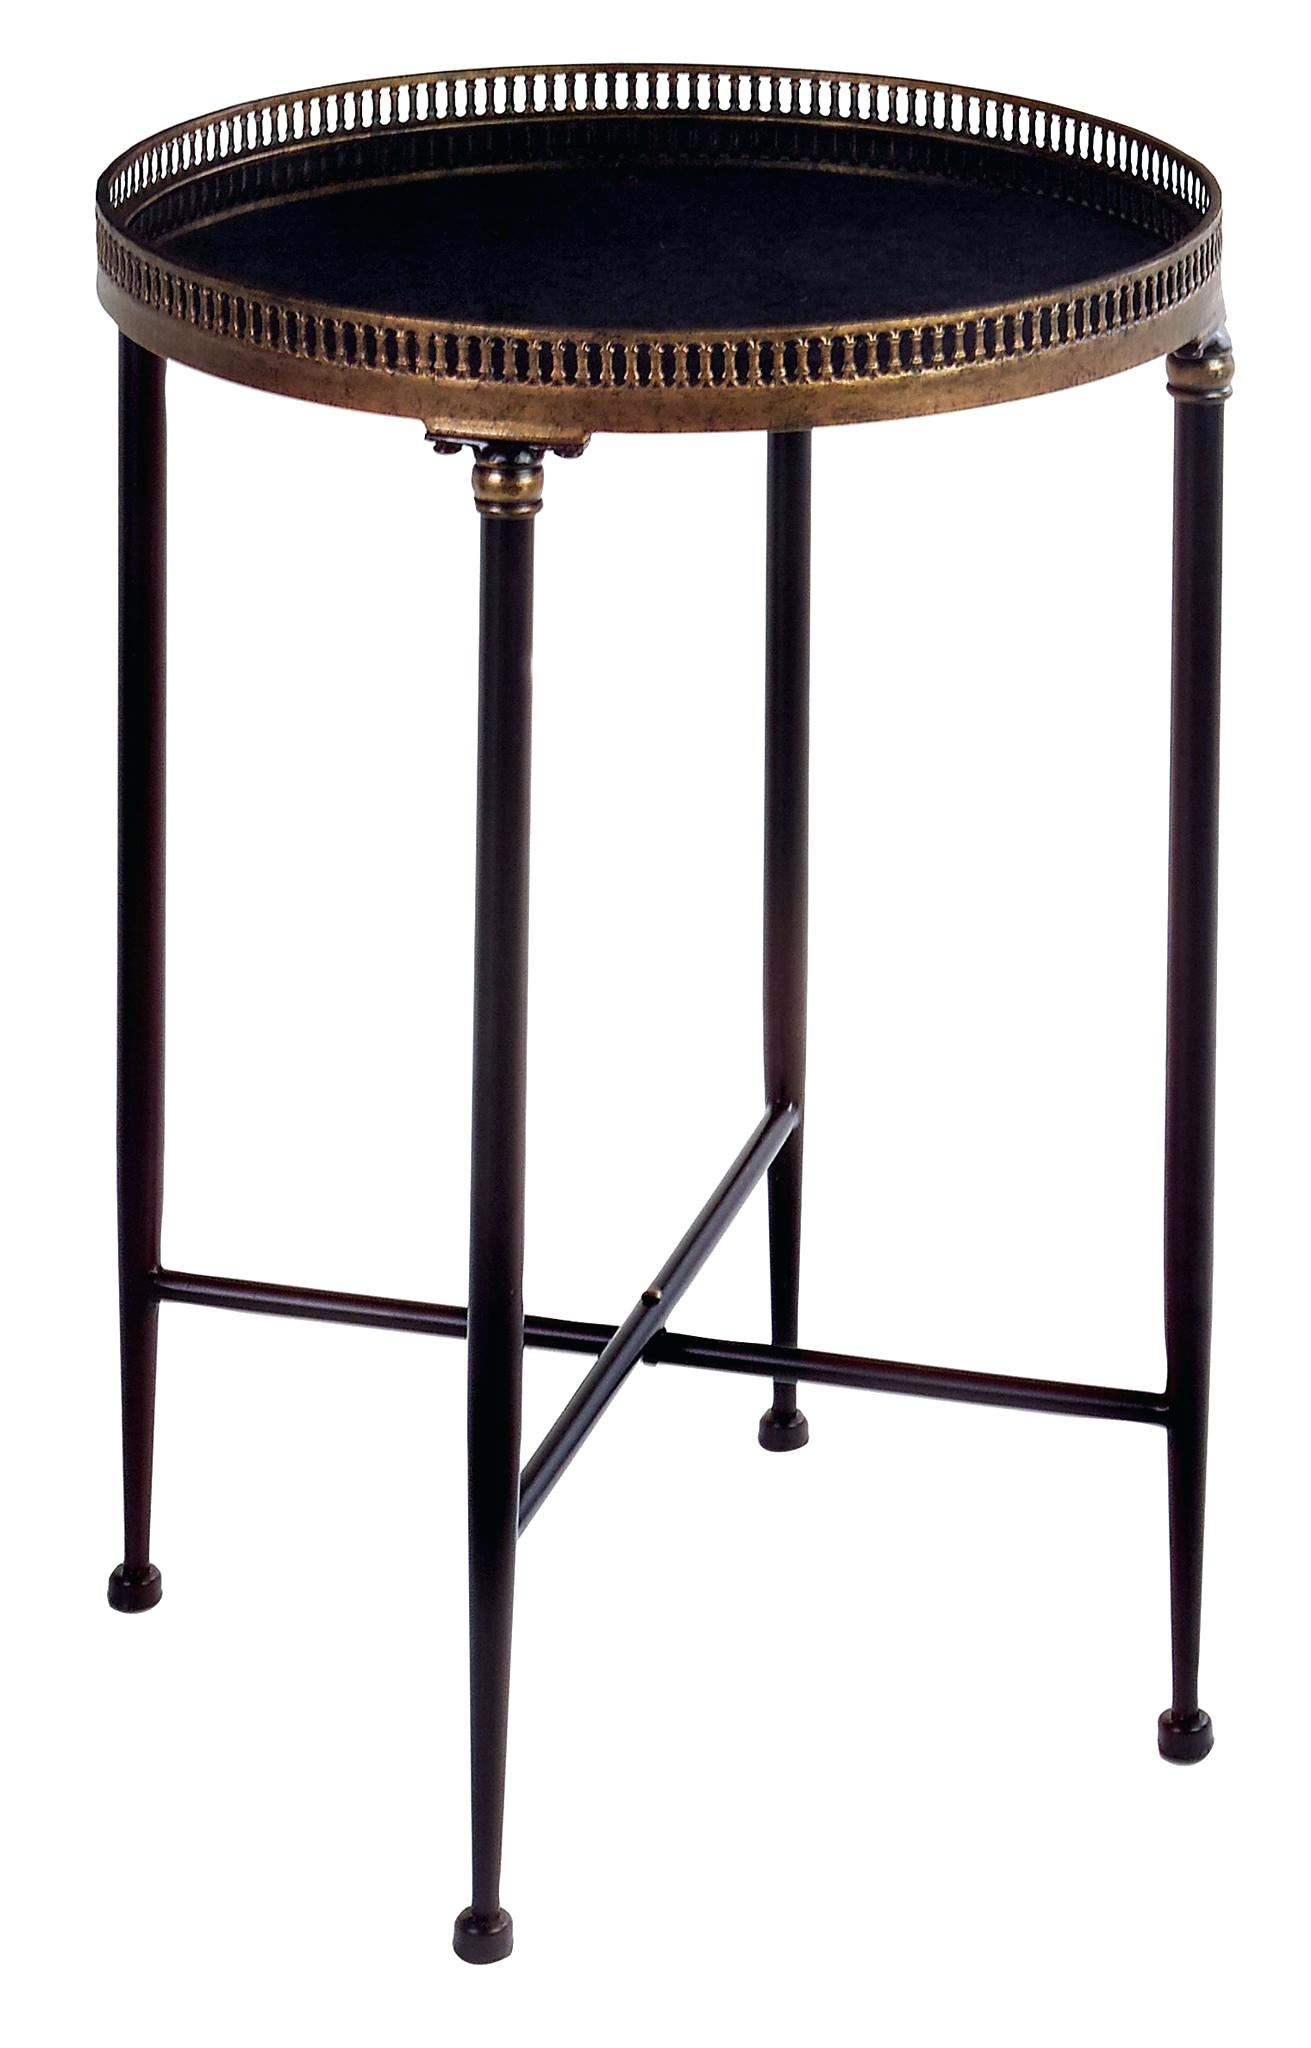 black accent table looknook round tables for winsome daniel with drawer finish best outdoor grills perspex side white patio chairs two nesting bedroom end ideas brass occasional